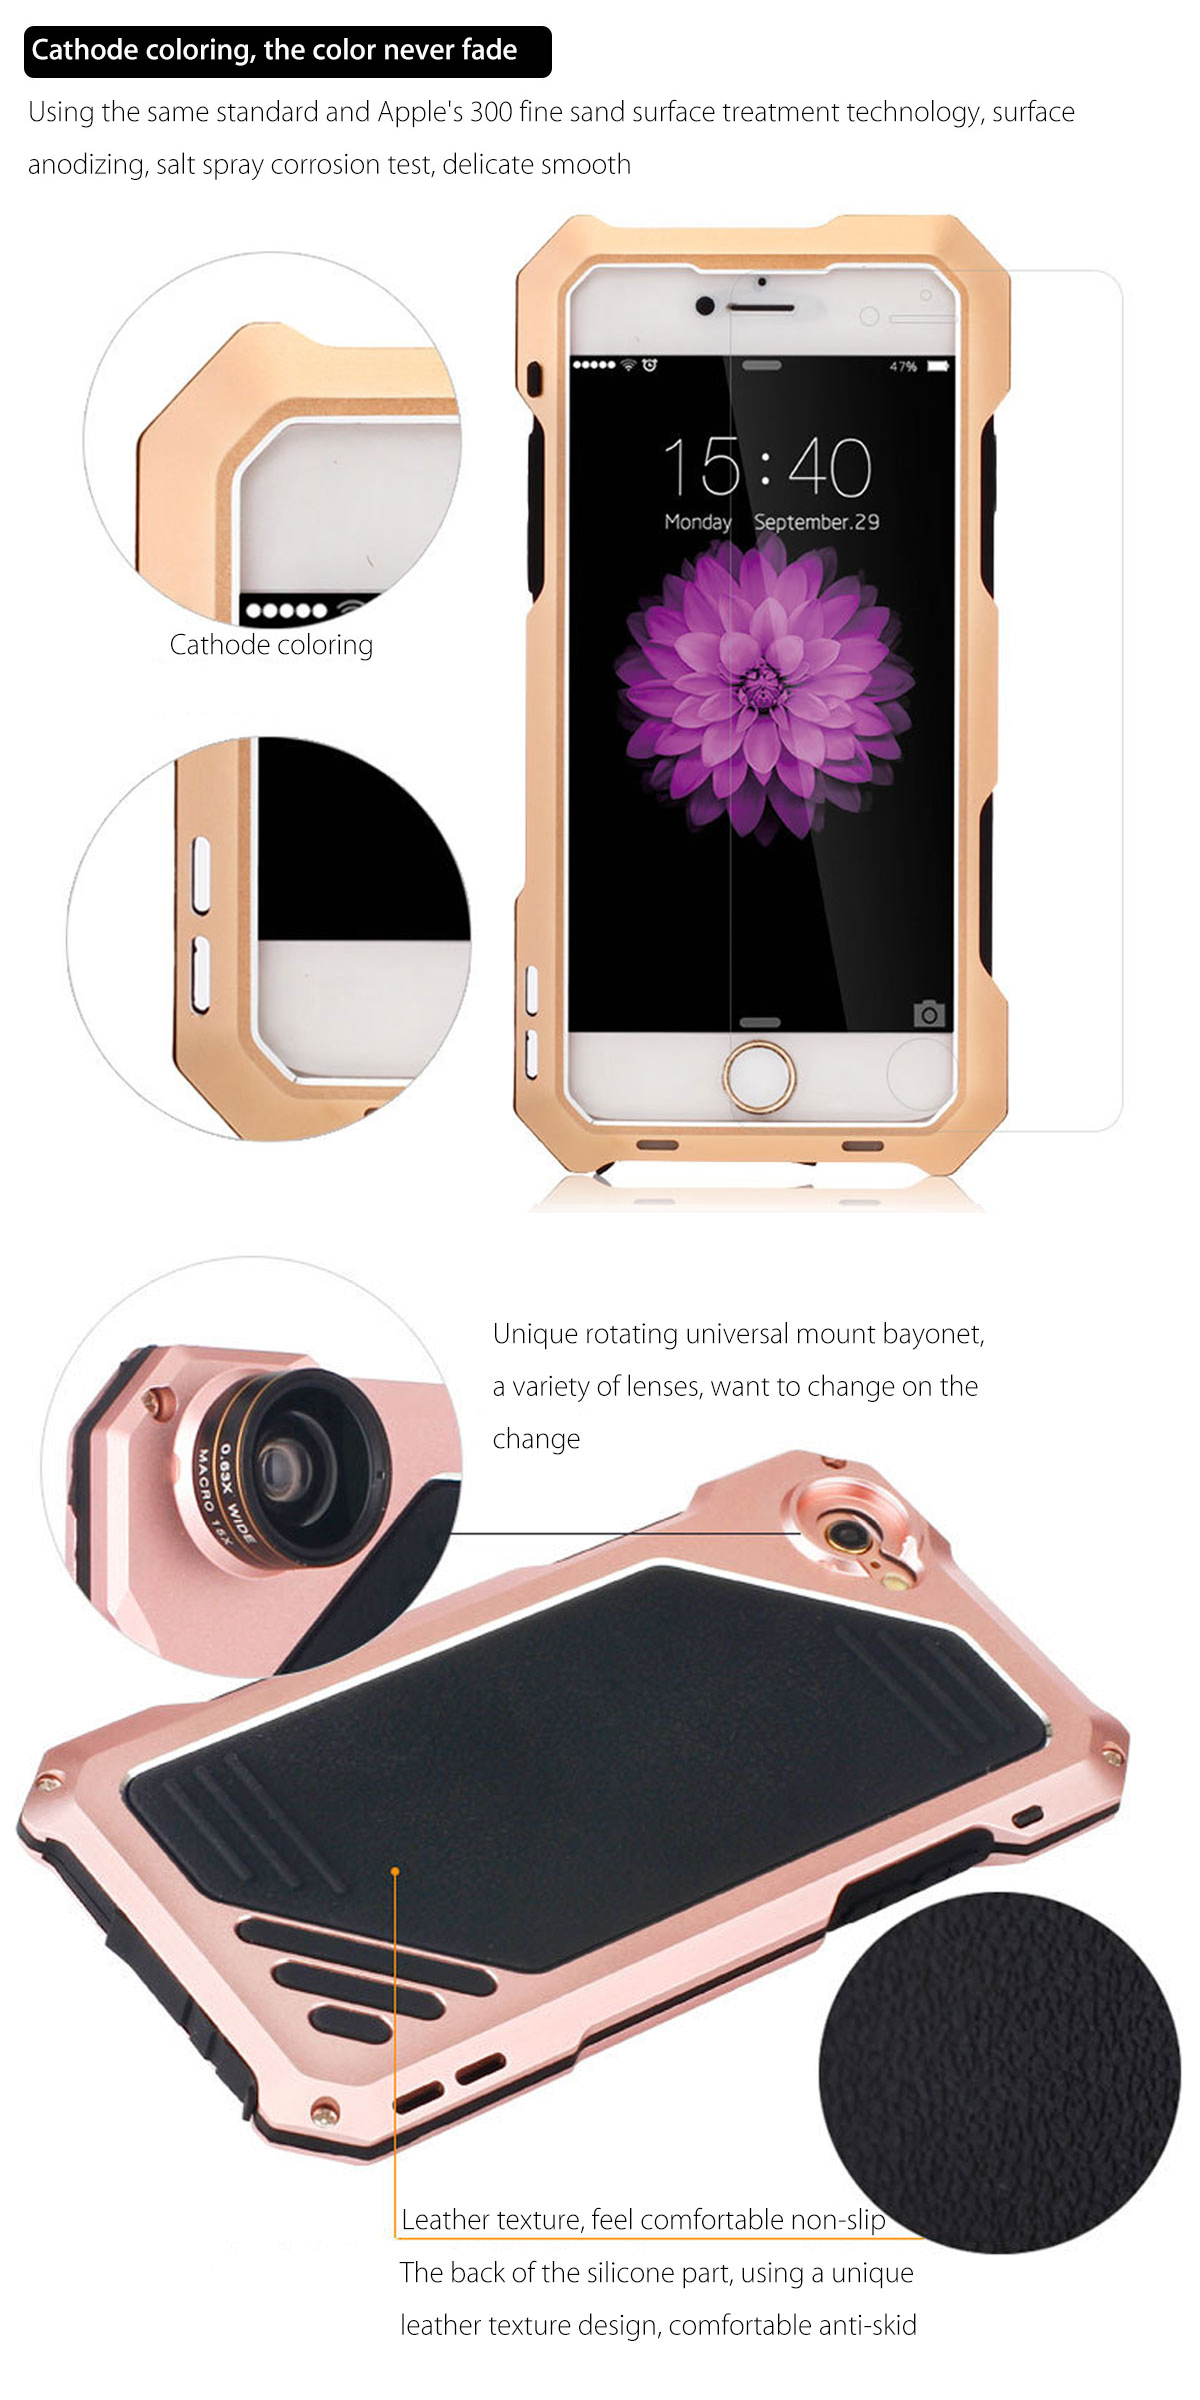 4 In 1 Waterproof Case Wide Angle Macro Fisheye Camera Lens For iPhone 6 / 6s Plus 5.5 Inches